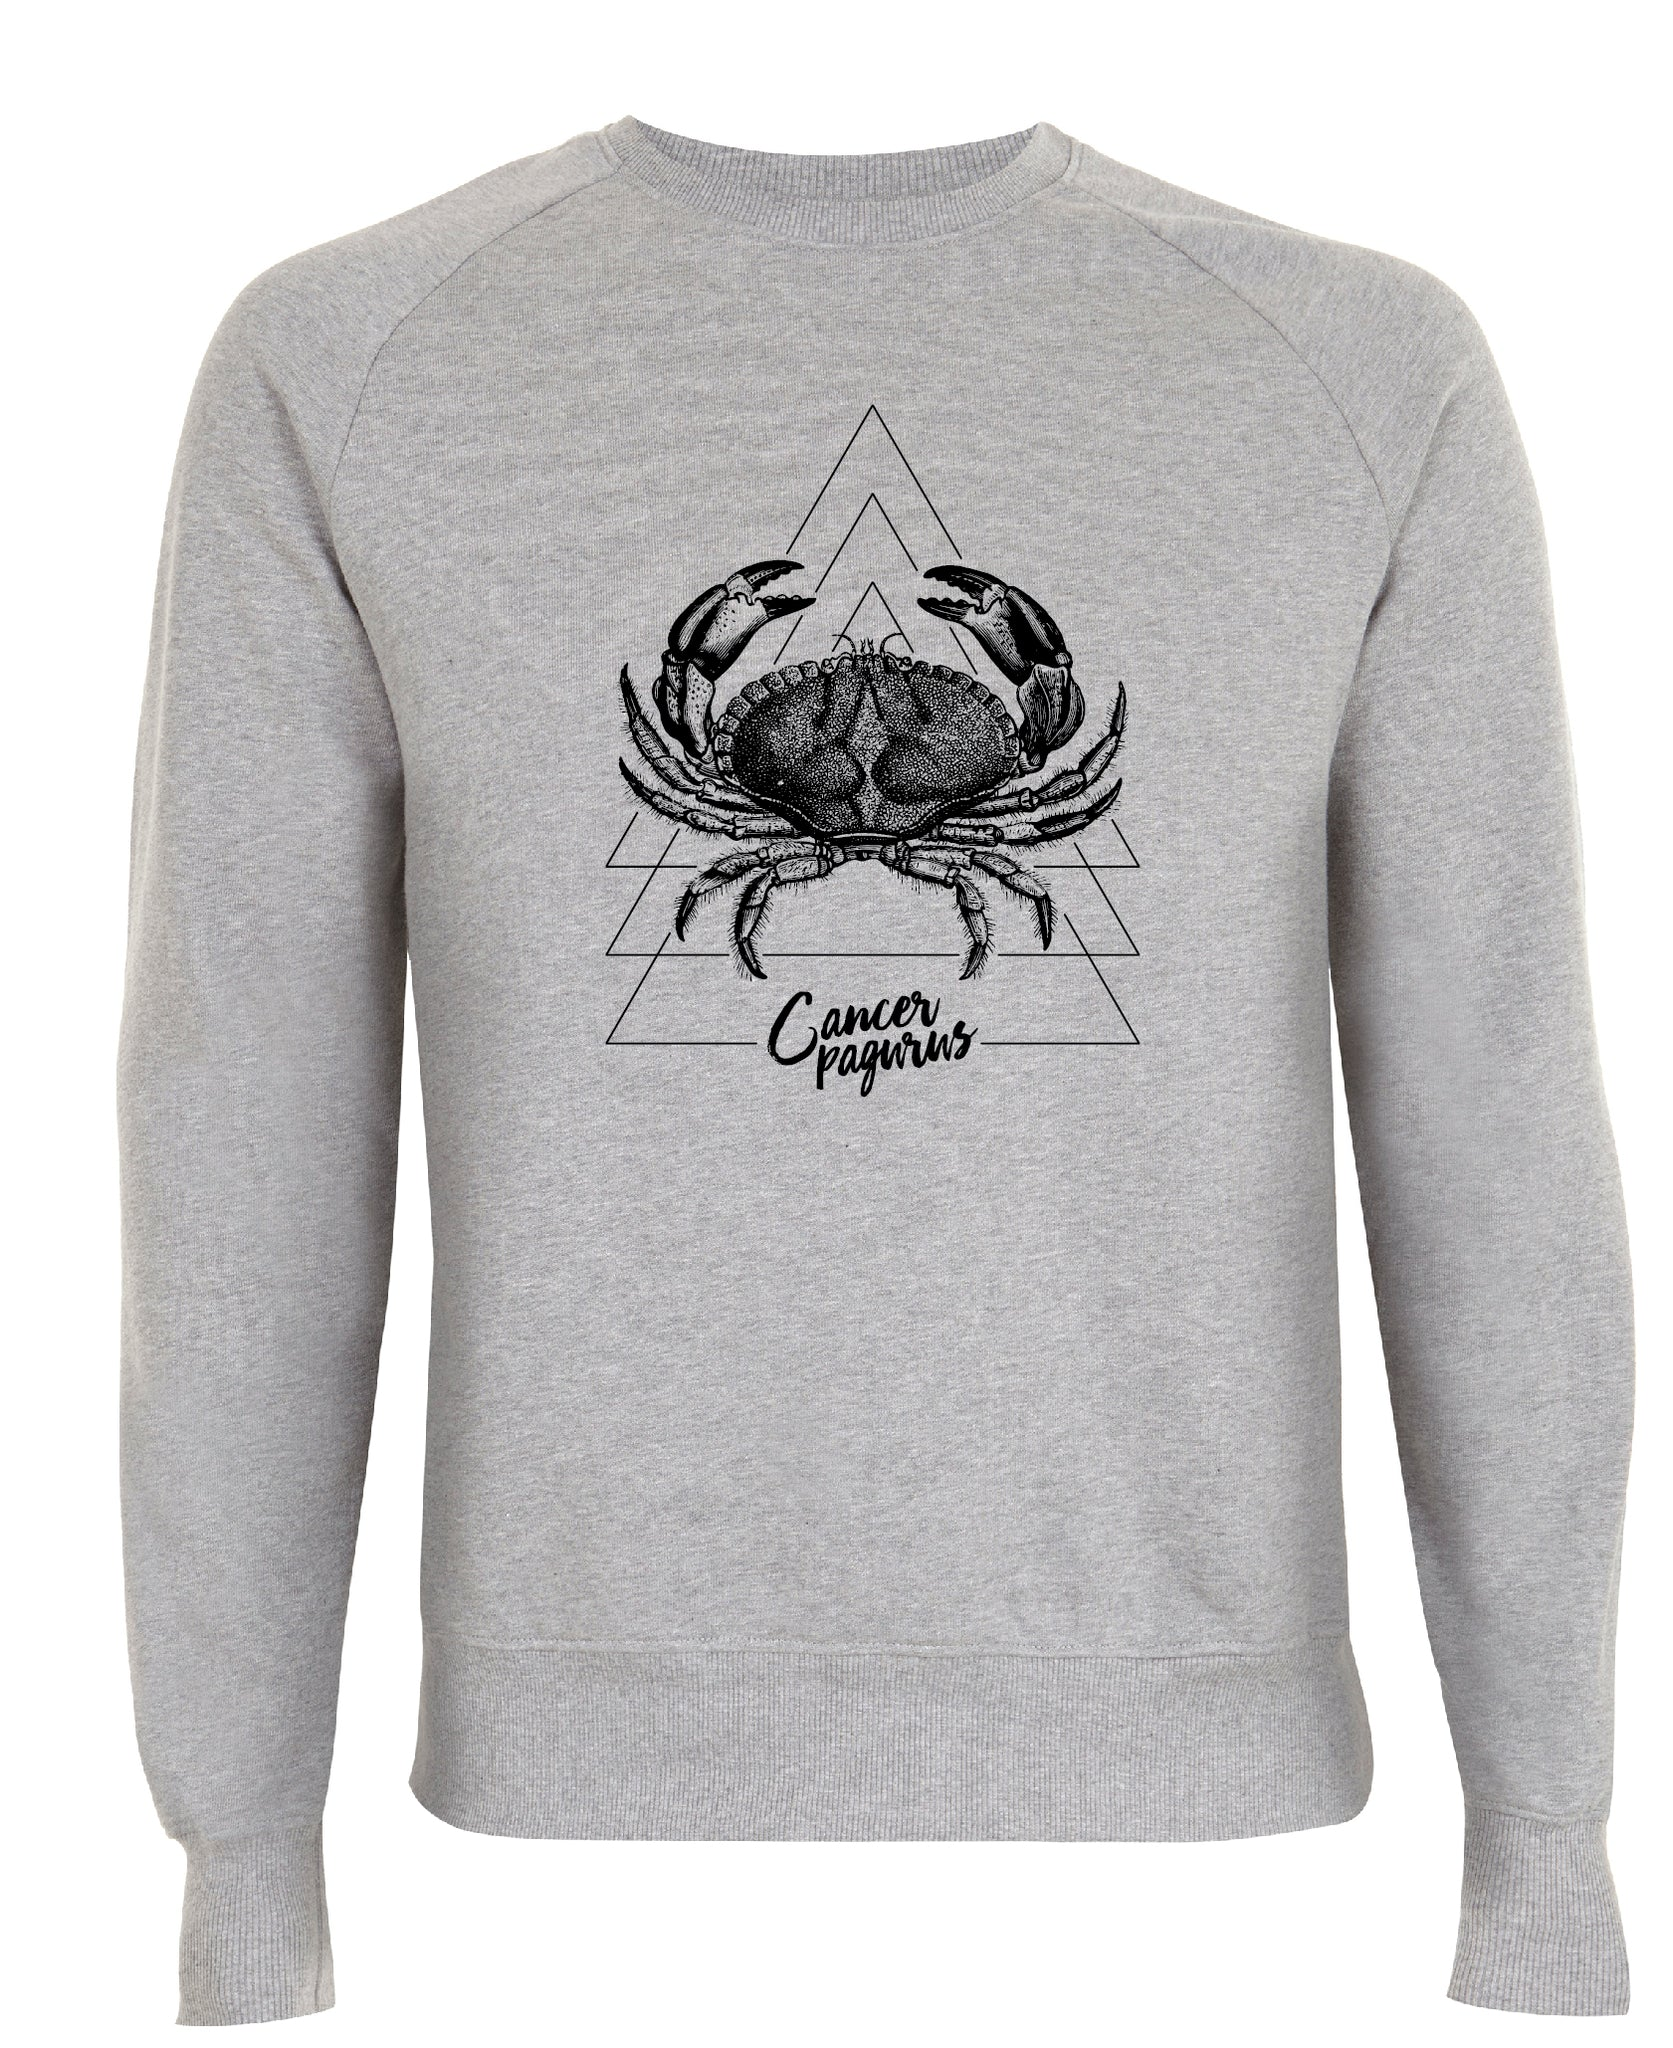 Cancer pagurus sweater